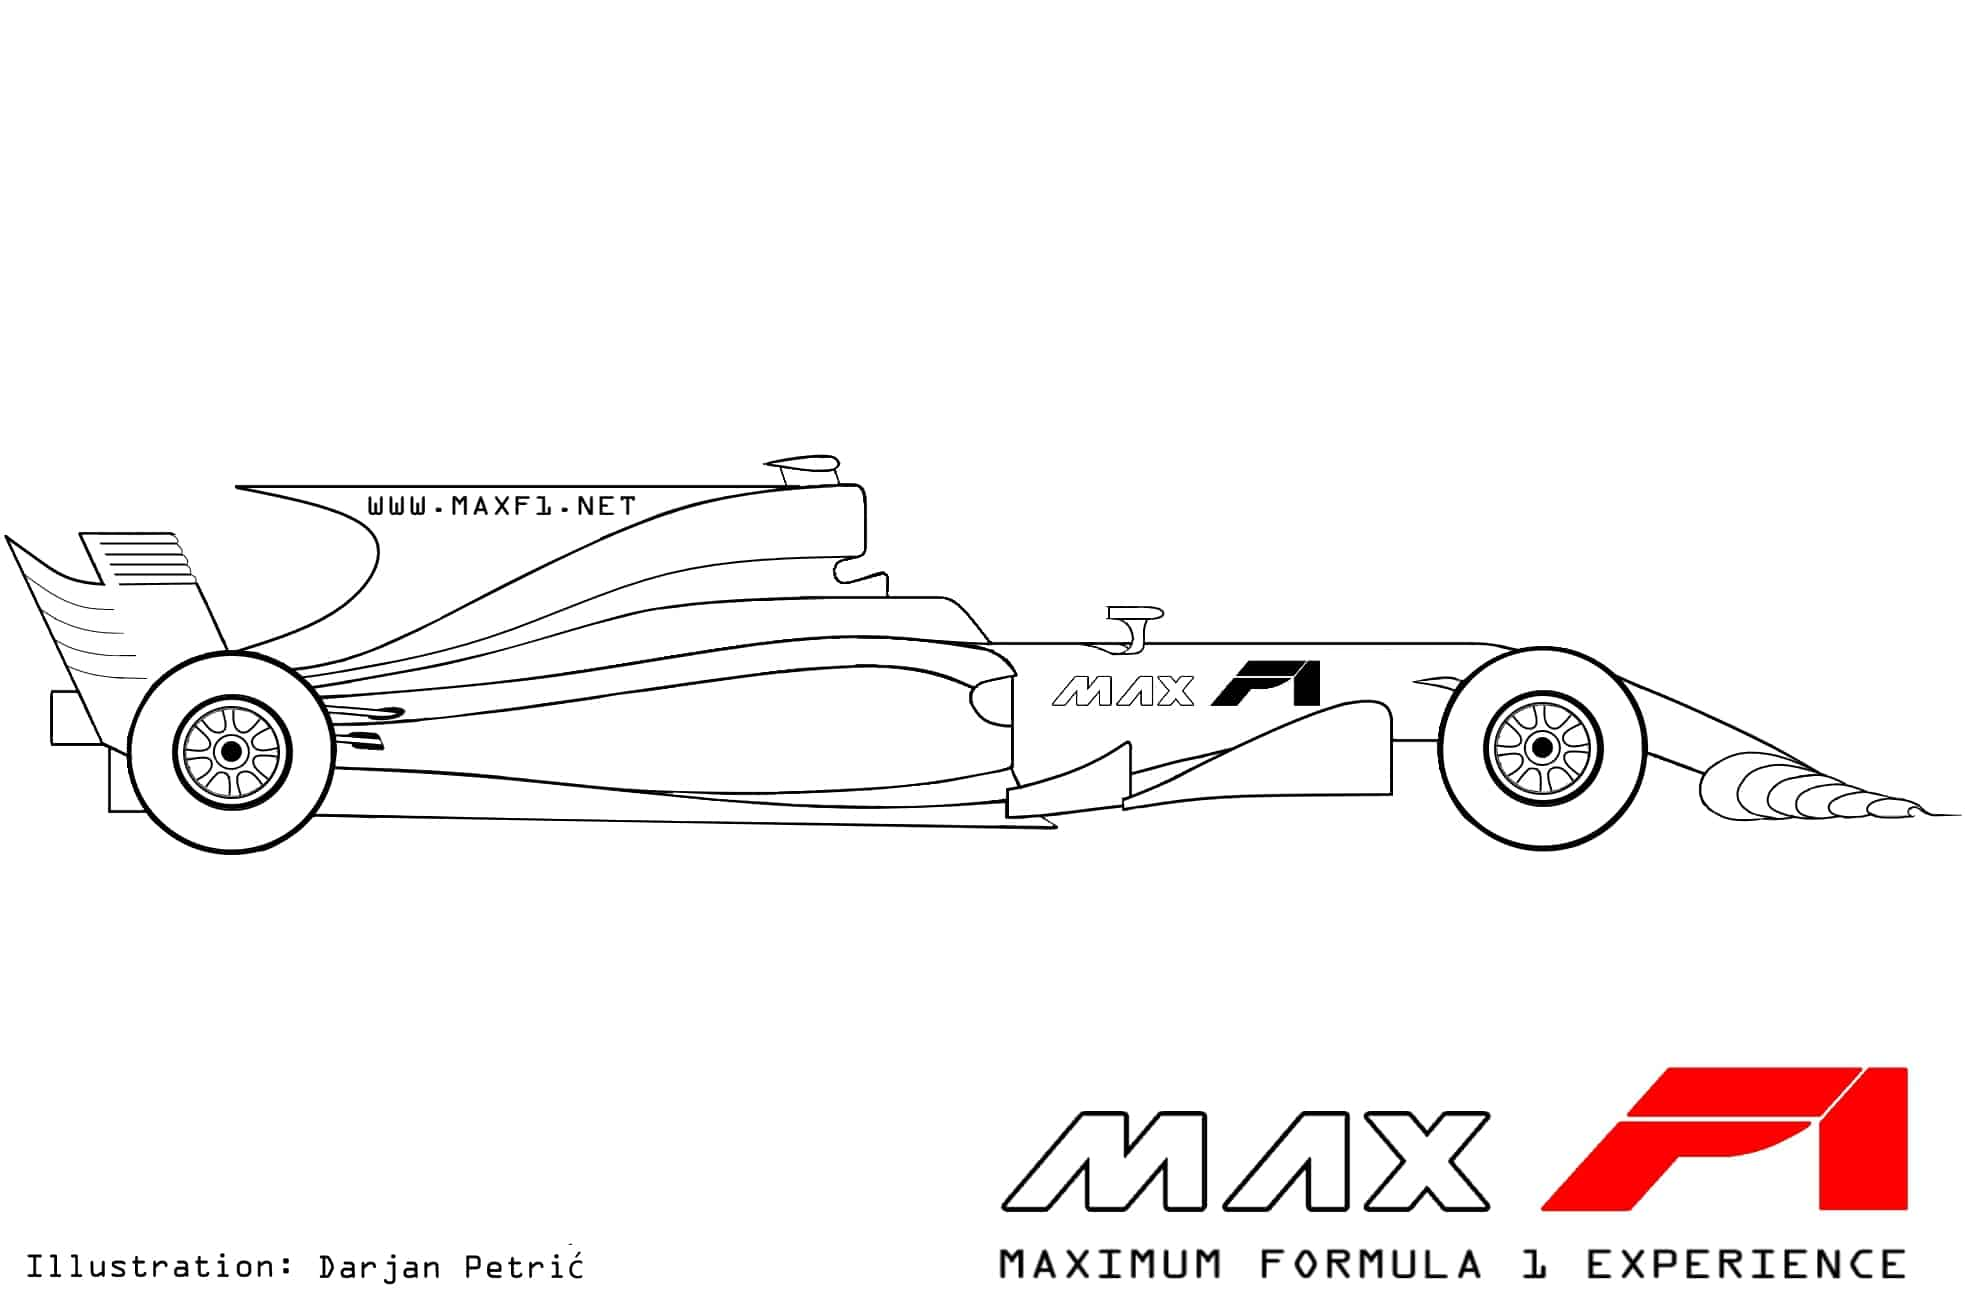 Formula 1 2017 car side technical drawing by Darjan Petric maxf1.net eng red